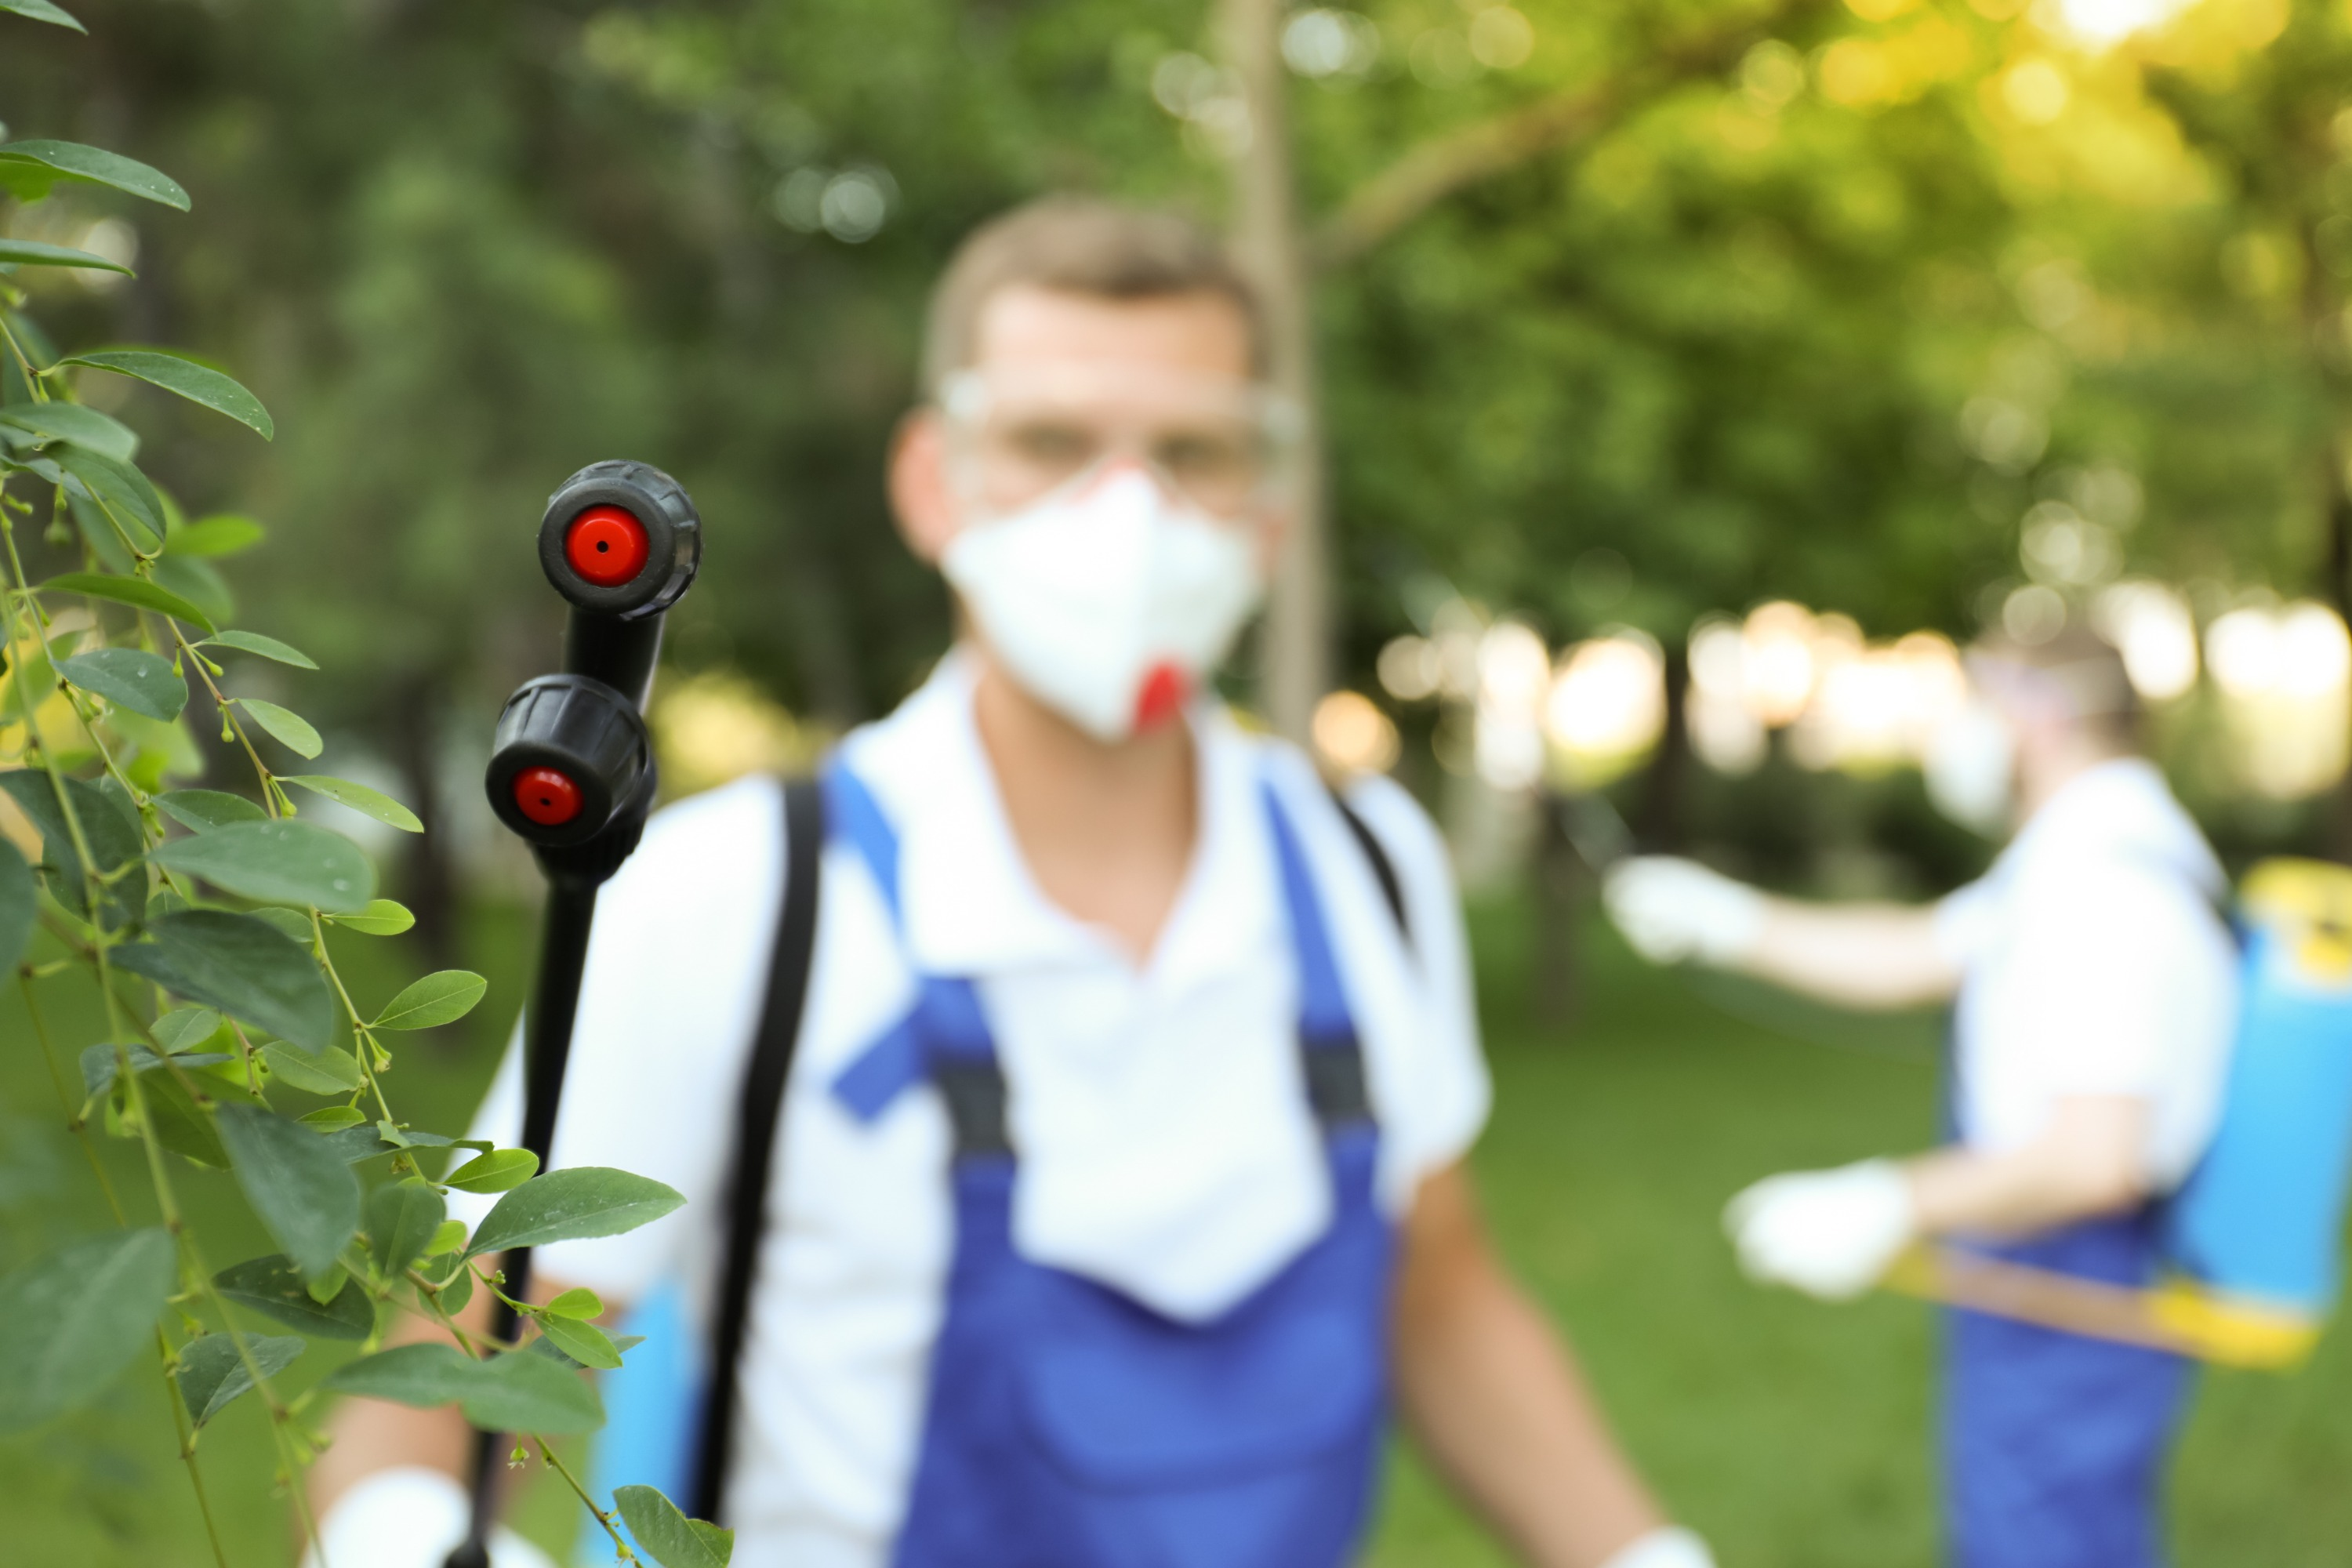 A pest control specialist wearing blue overalls, a white short-sleeved collard shirt, protective eyewear, and white gloves uses a black wand to spray pest control solution on a green bush.